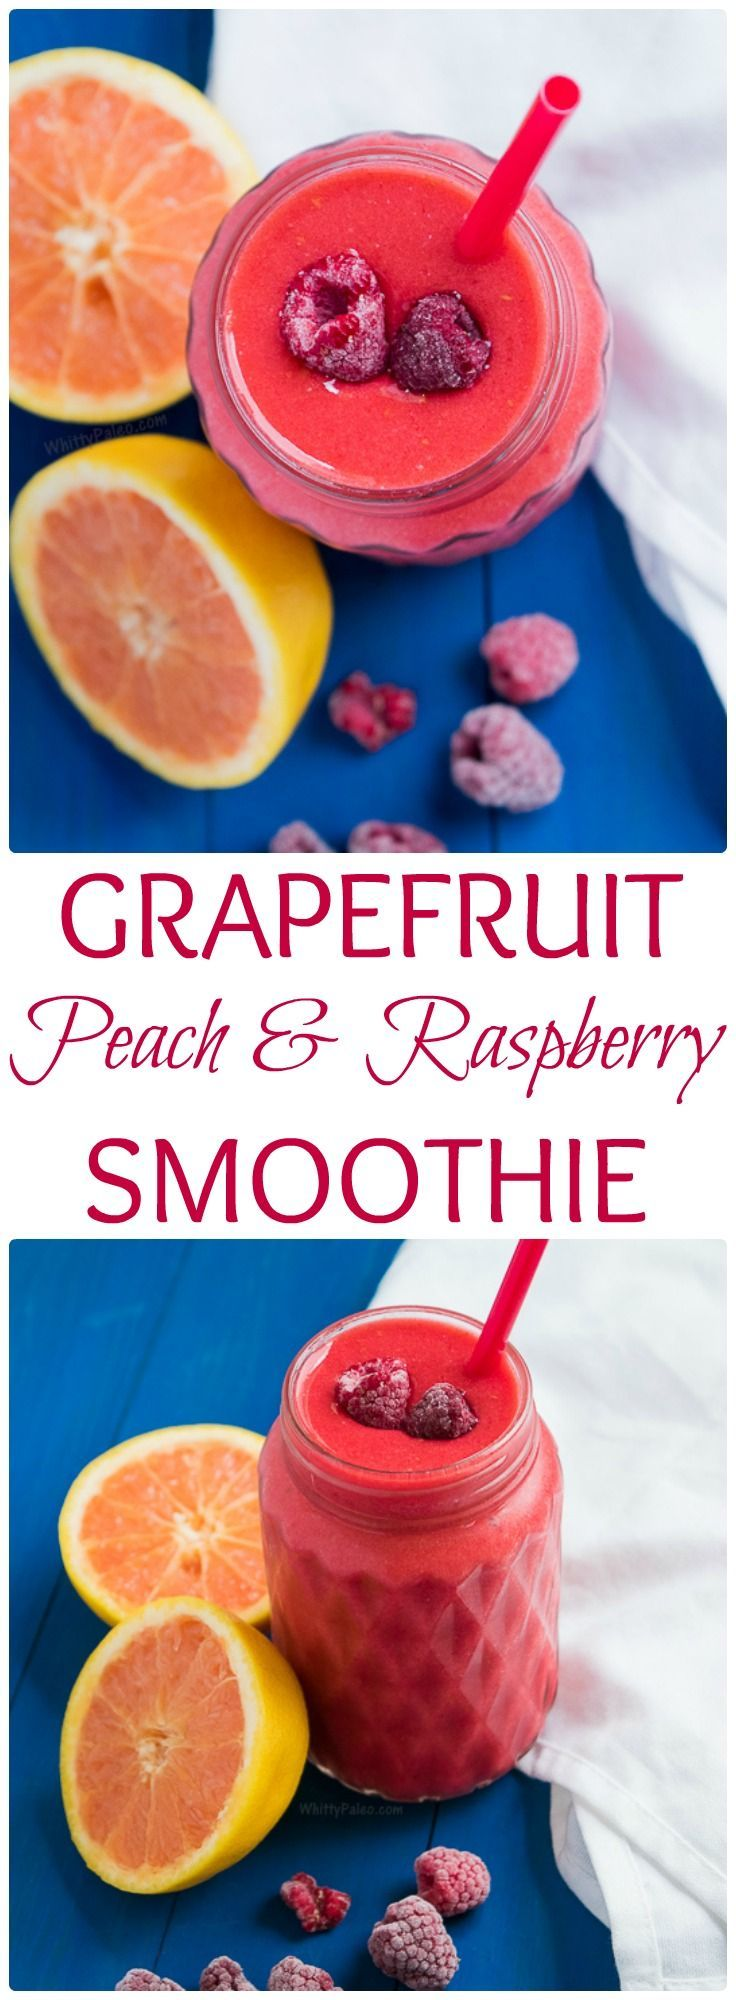 Paleo Summer Grapefruit Peach Raspberry Smoothie - refresh yourself this summer with this sweet and cooling drink! From http://WhittyPaleo.com